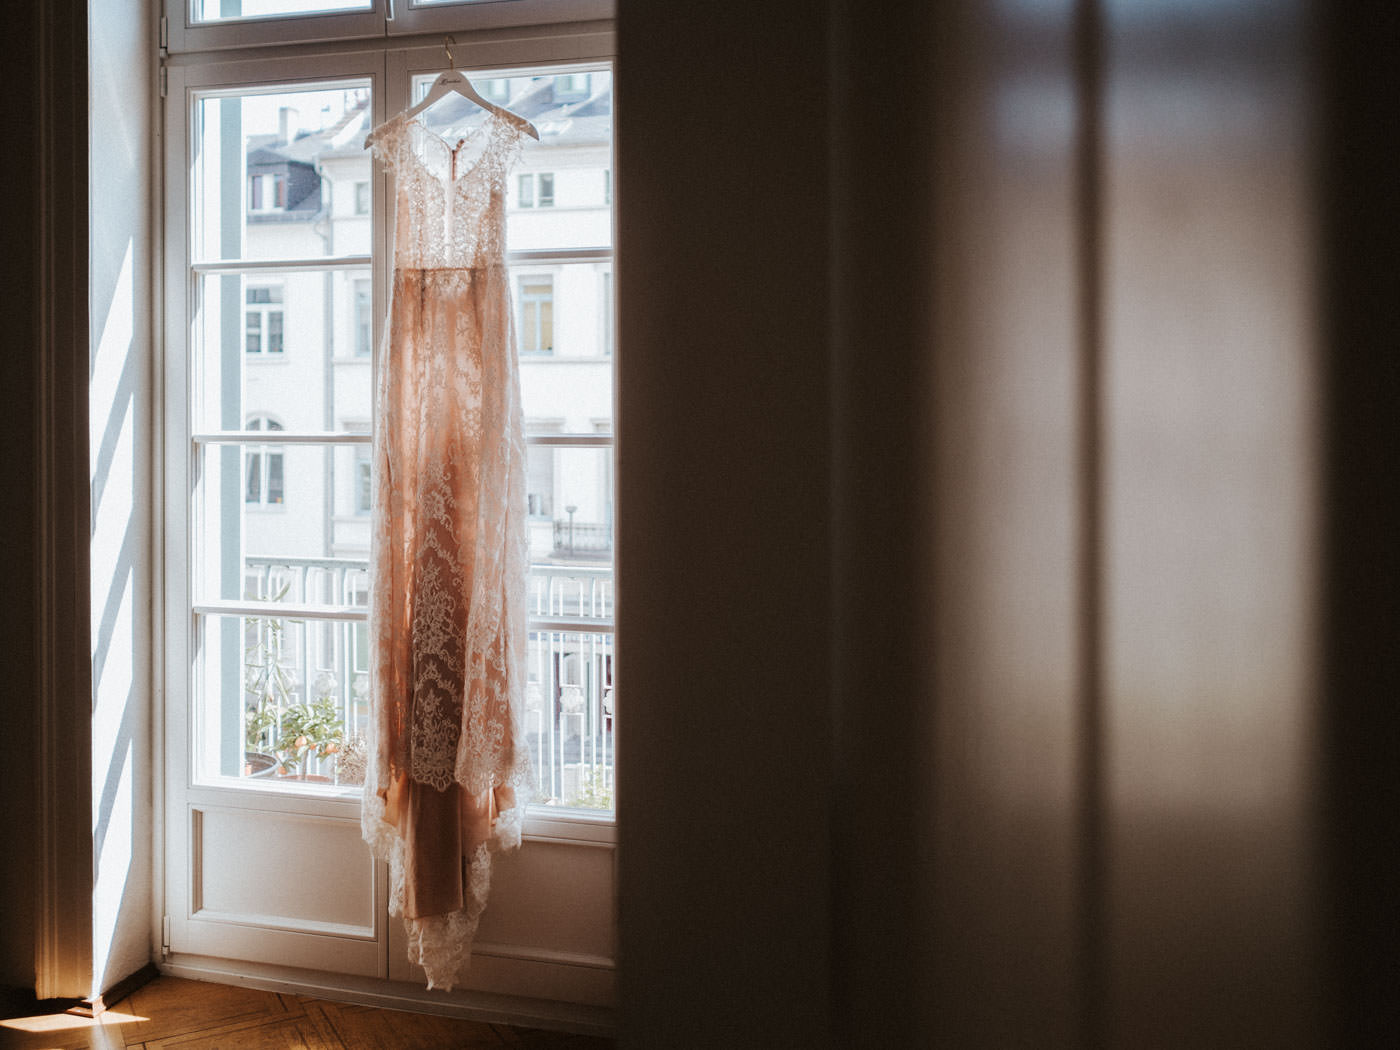 Boho Vintage Wedding Dress hanging at a window